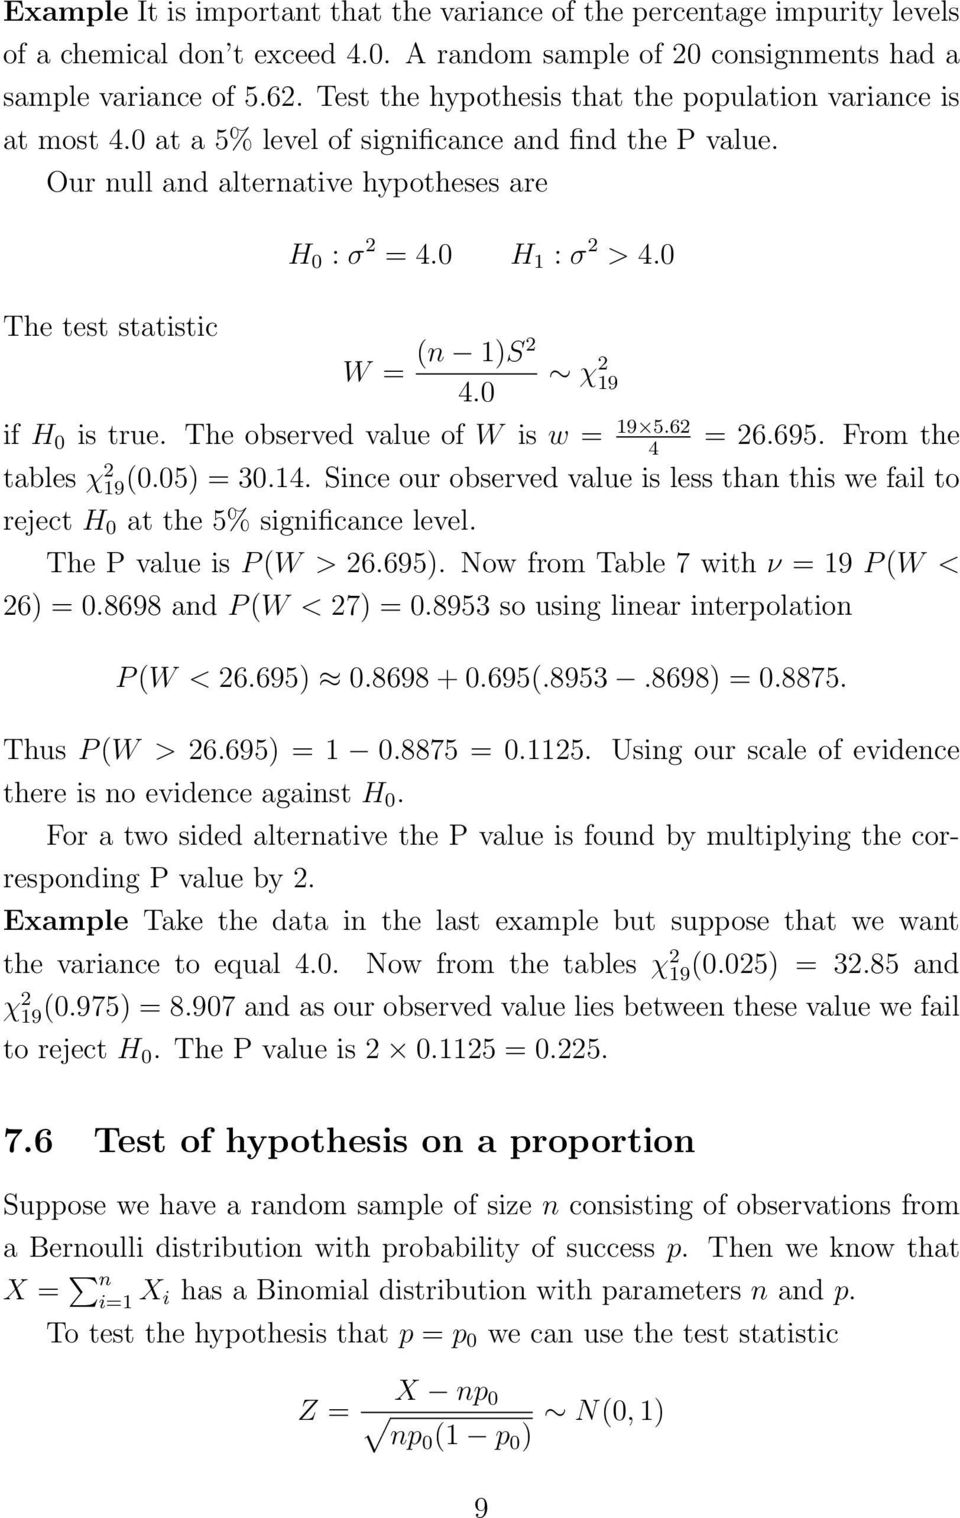 7 Hypothesis testing - one sample tests - PDF